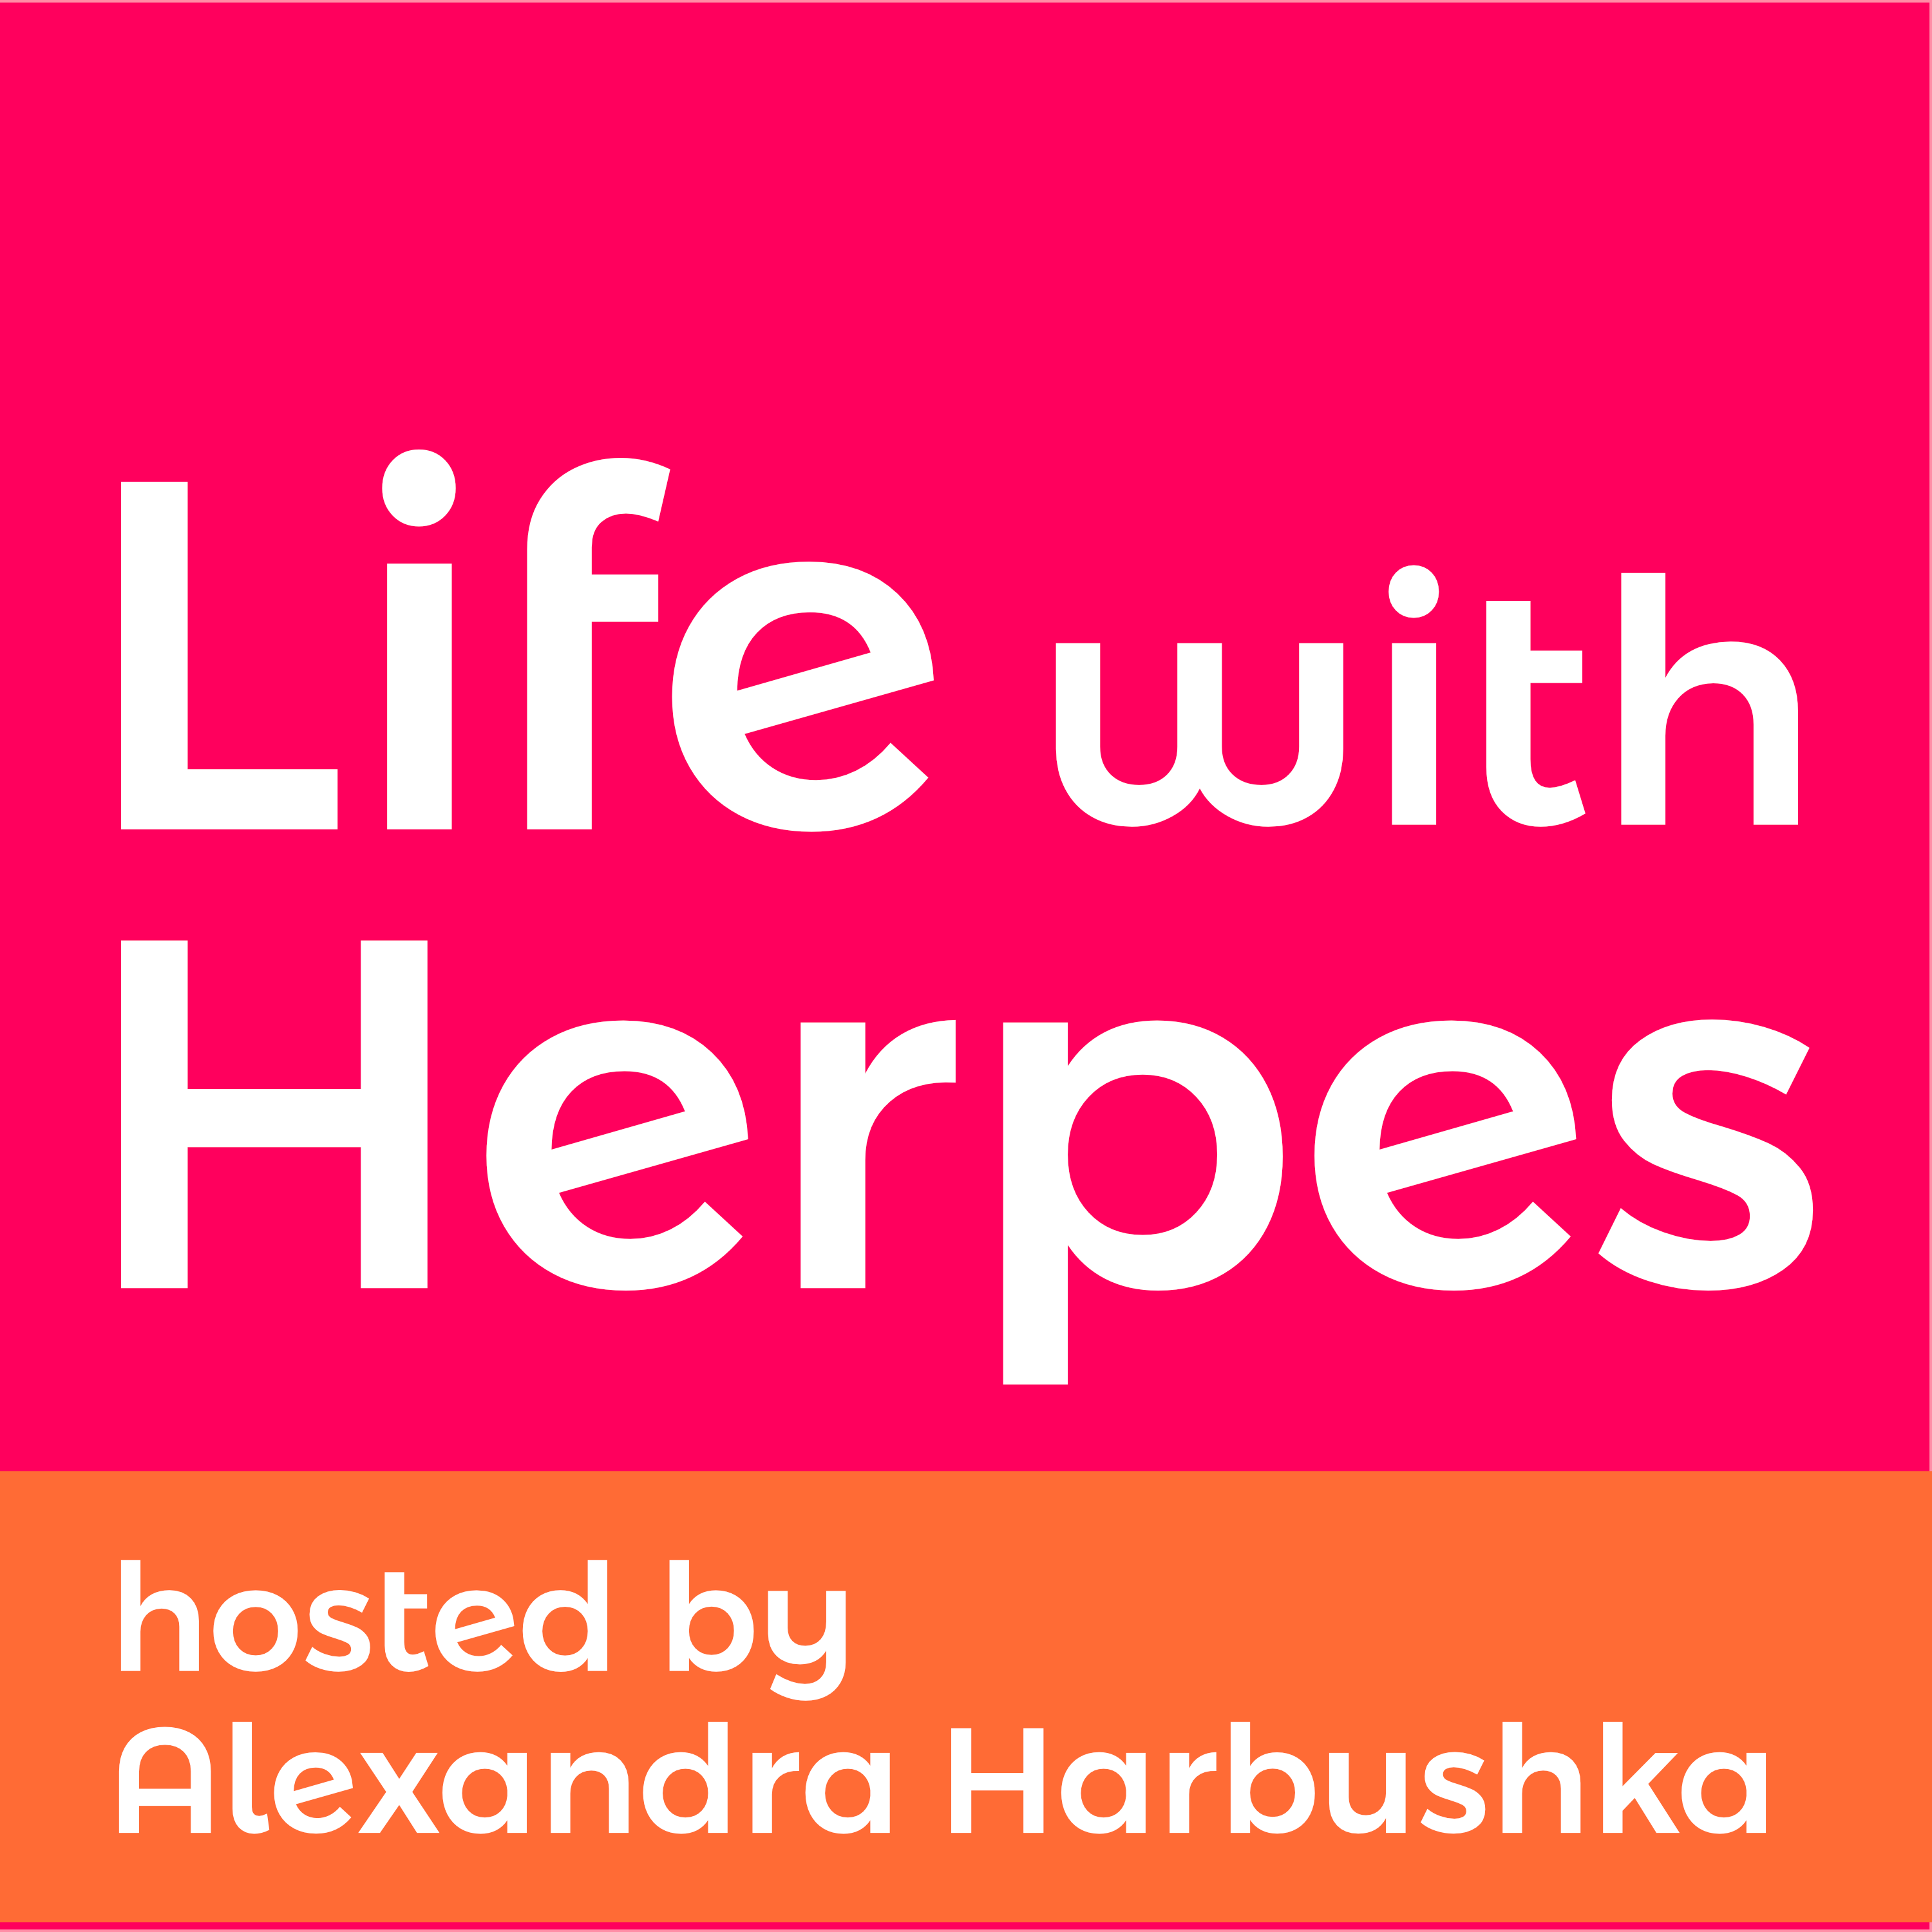 Casual sex and herpes